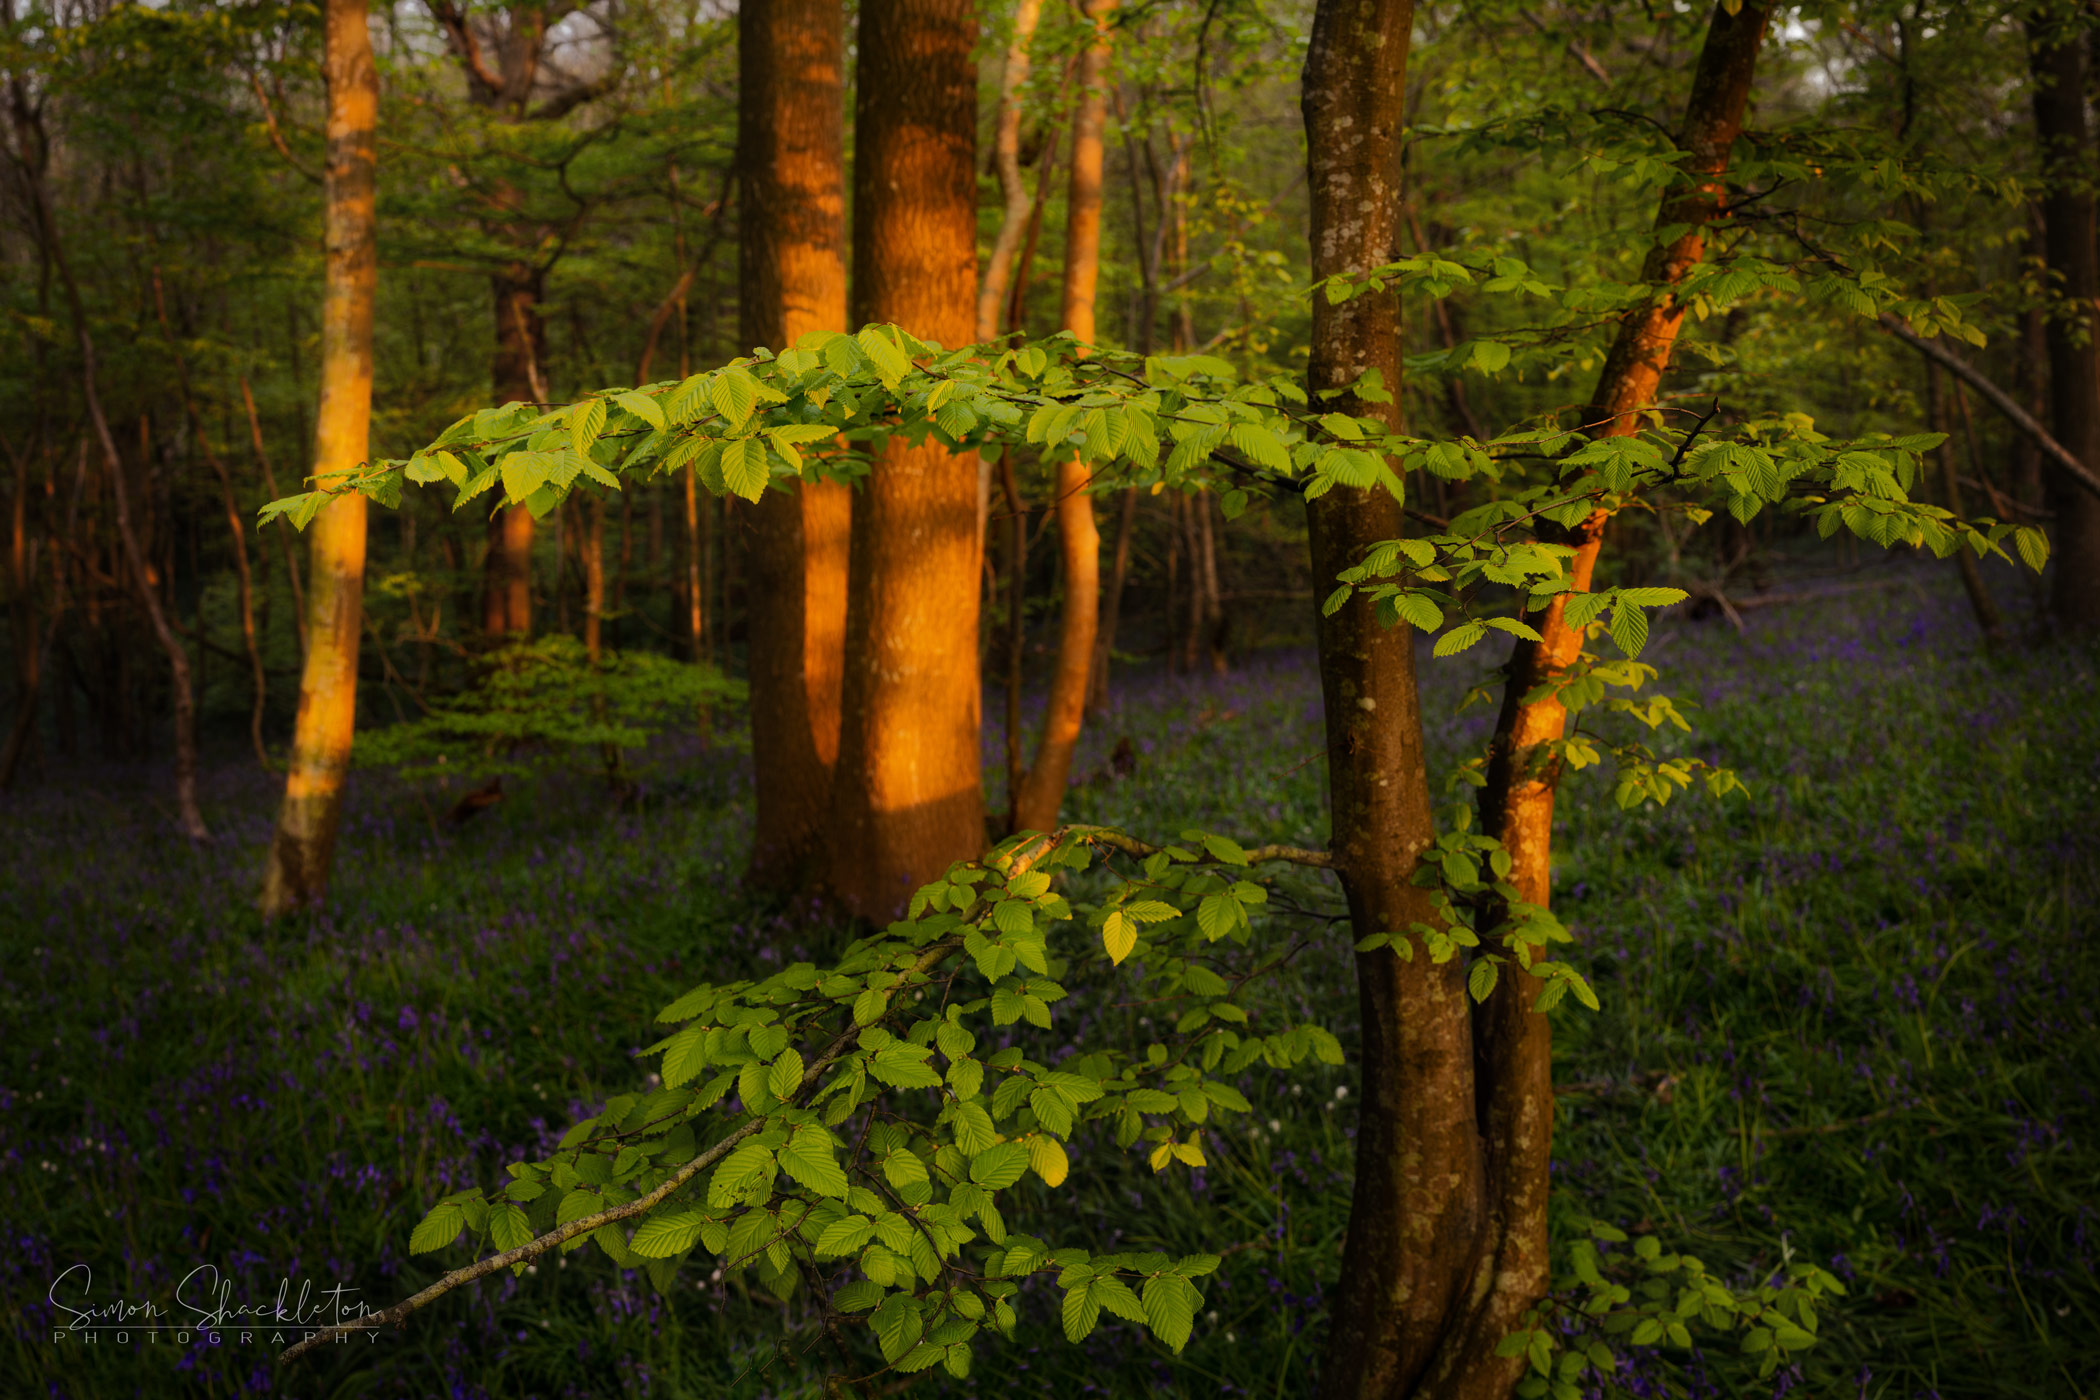 The warm glow of golden hour, shot around 6.15am in mid-April, Hamstreet Woods.